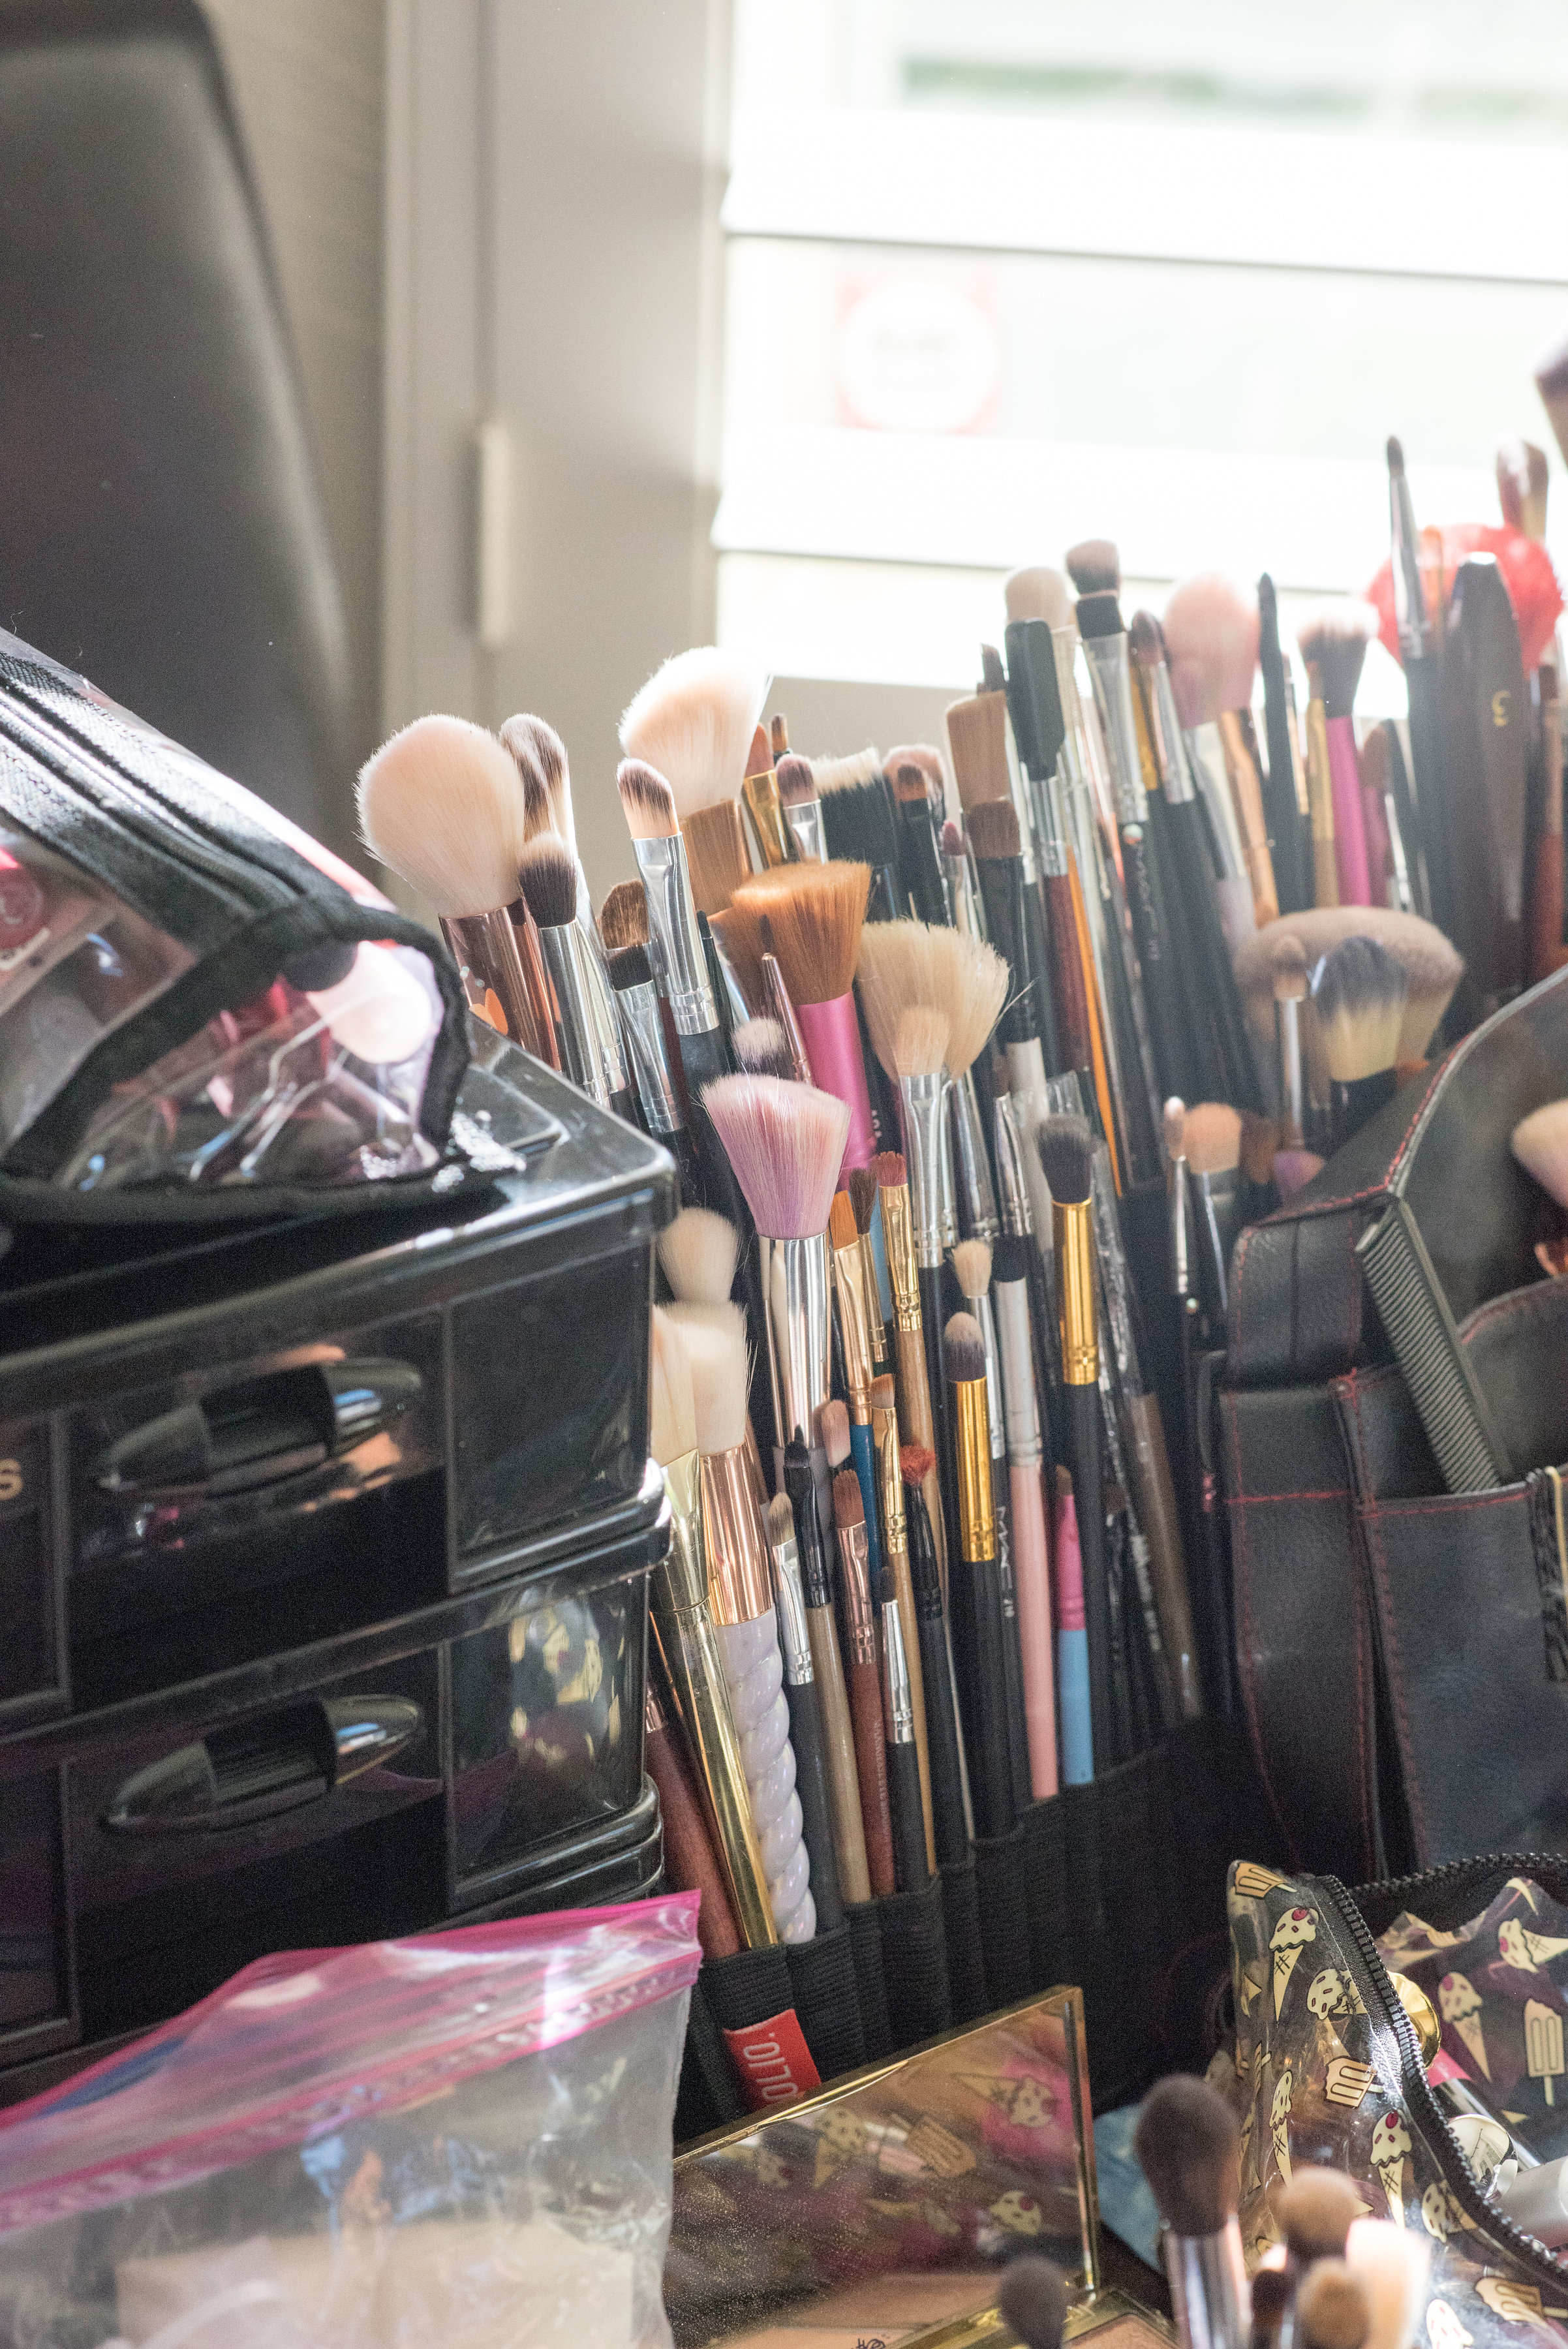 Just a little snapshot of my brush collection for weddings and events